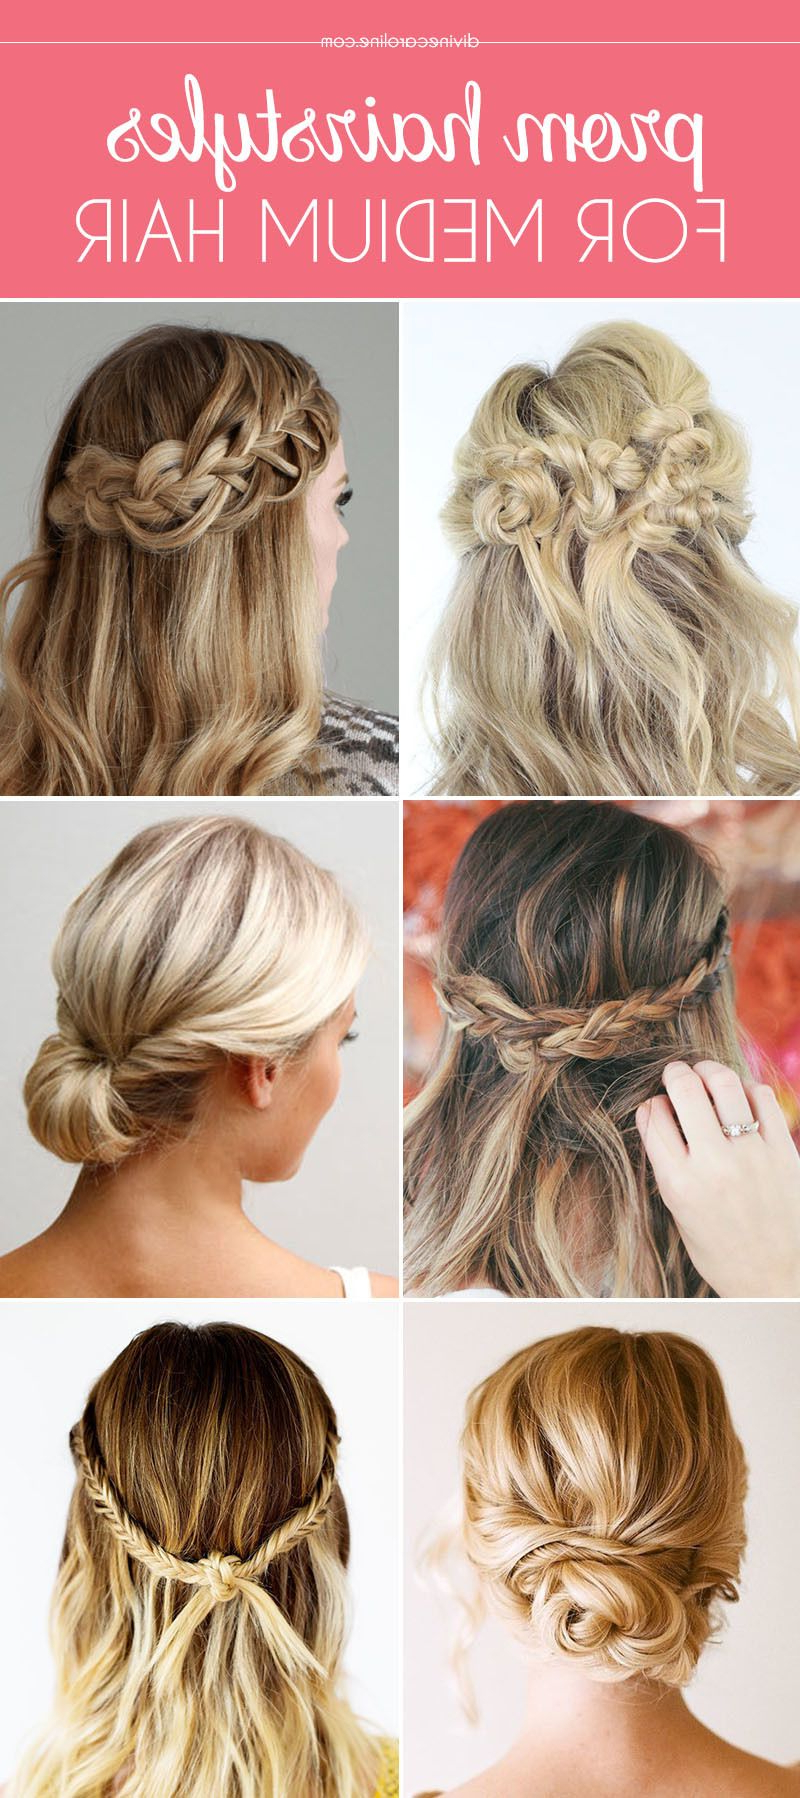 Hairstyles (View 5 of 20)